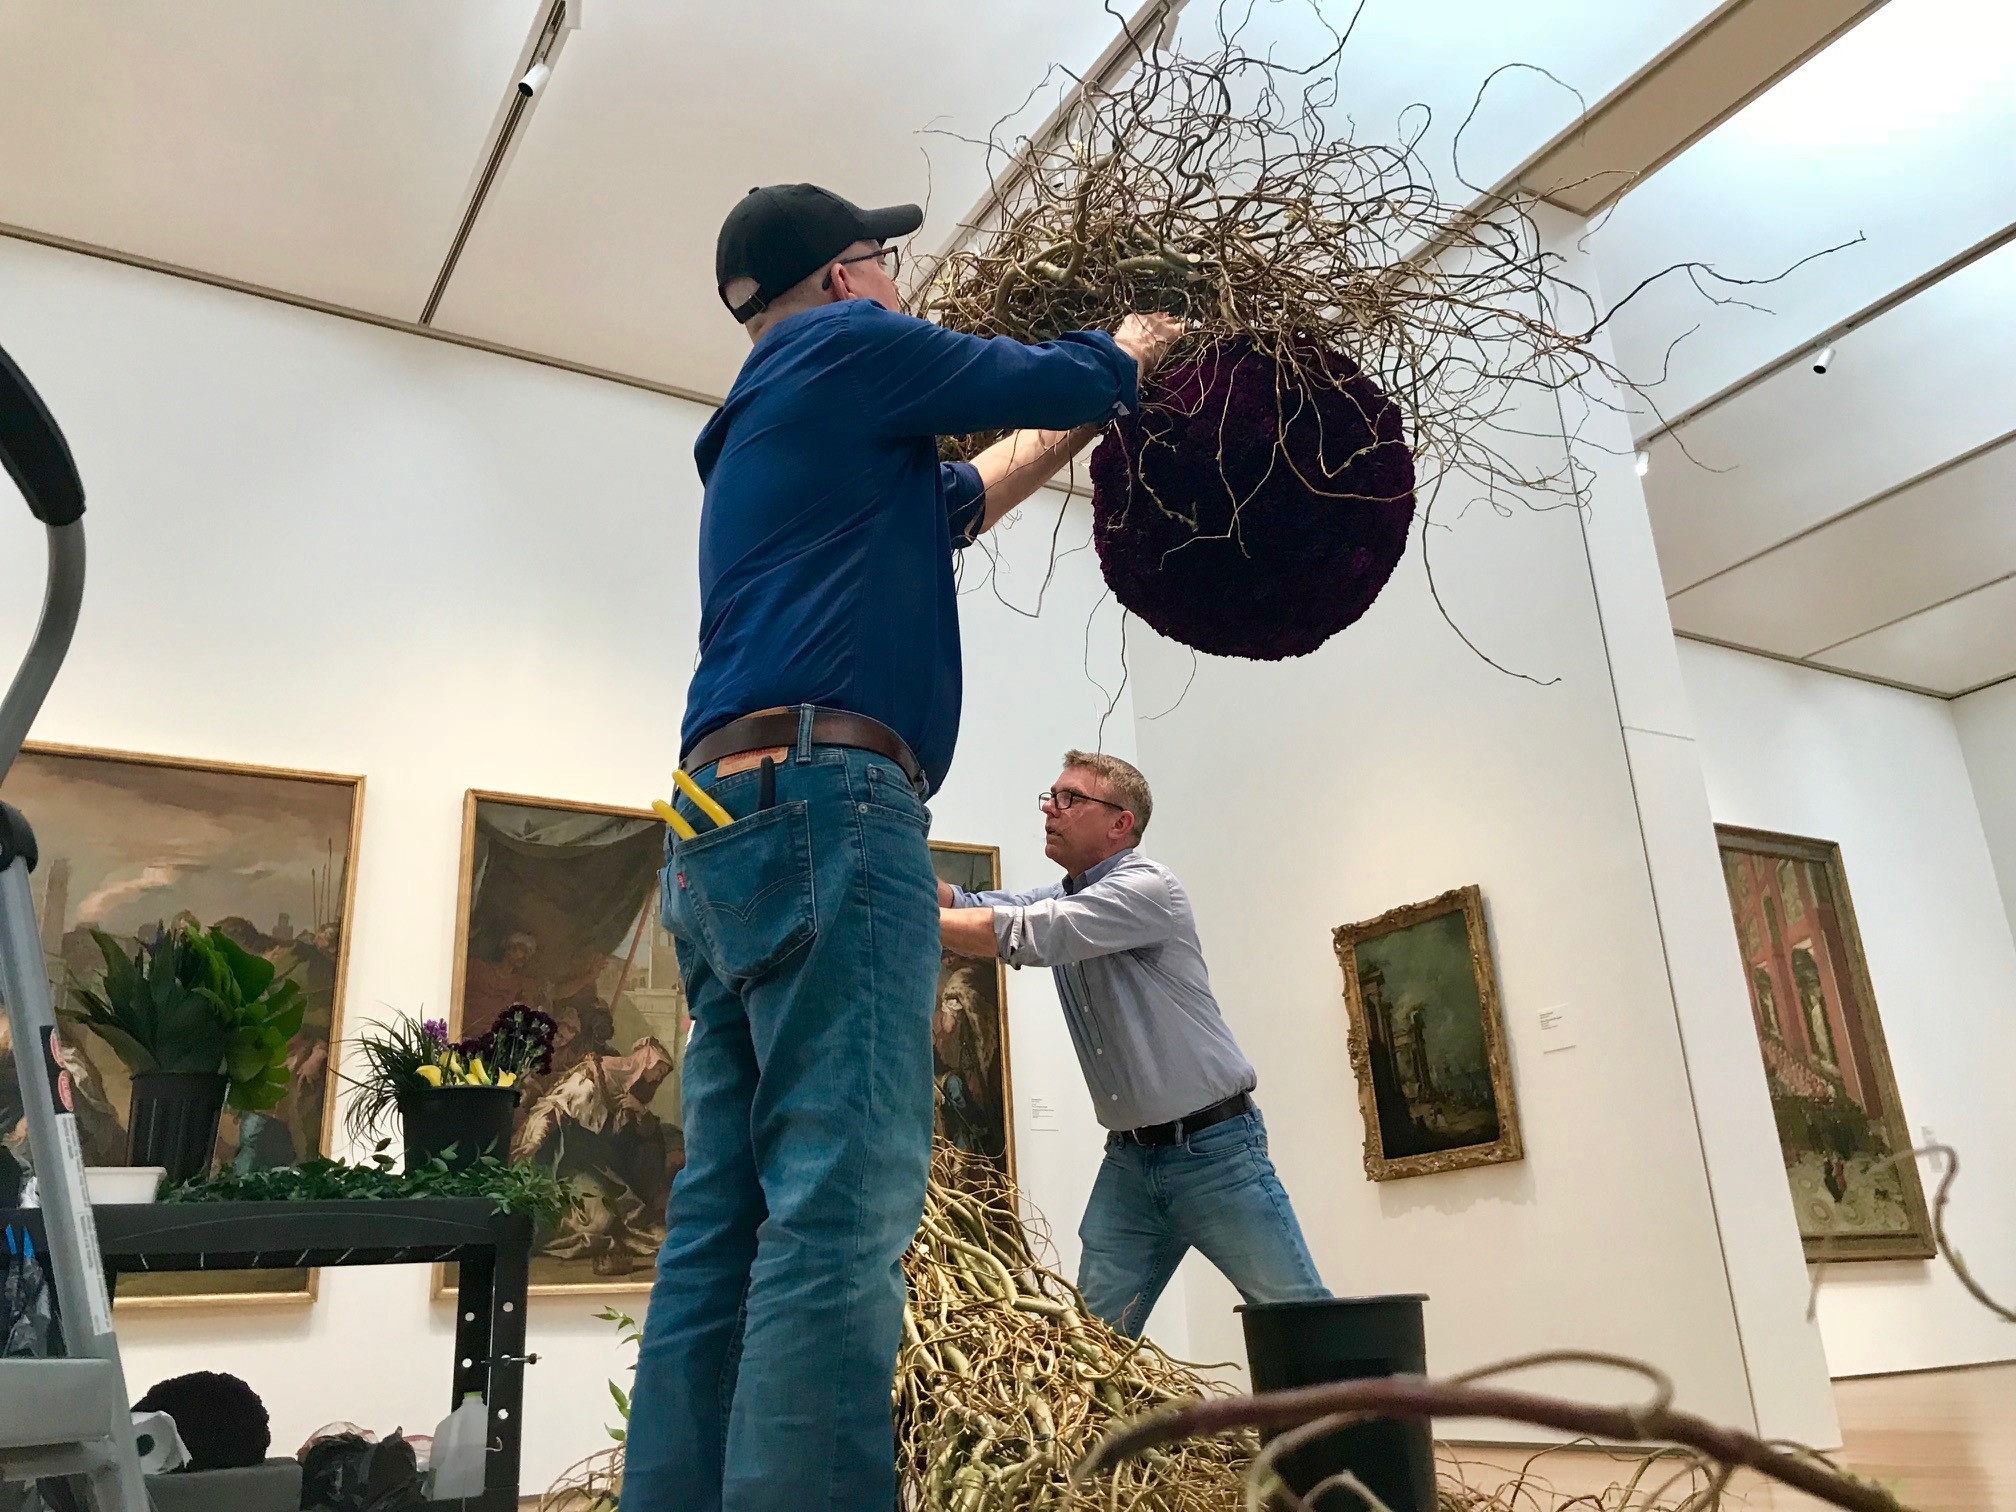 <div class='meta'><div class='origin-logo' data-origin='WTVD'></div><span class='caption-text' data-credit=''>Floral festival coming in bloom at NC Museum of Art</span></div>